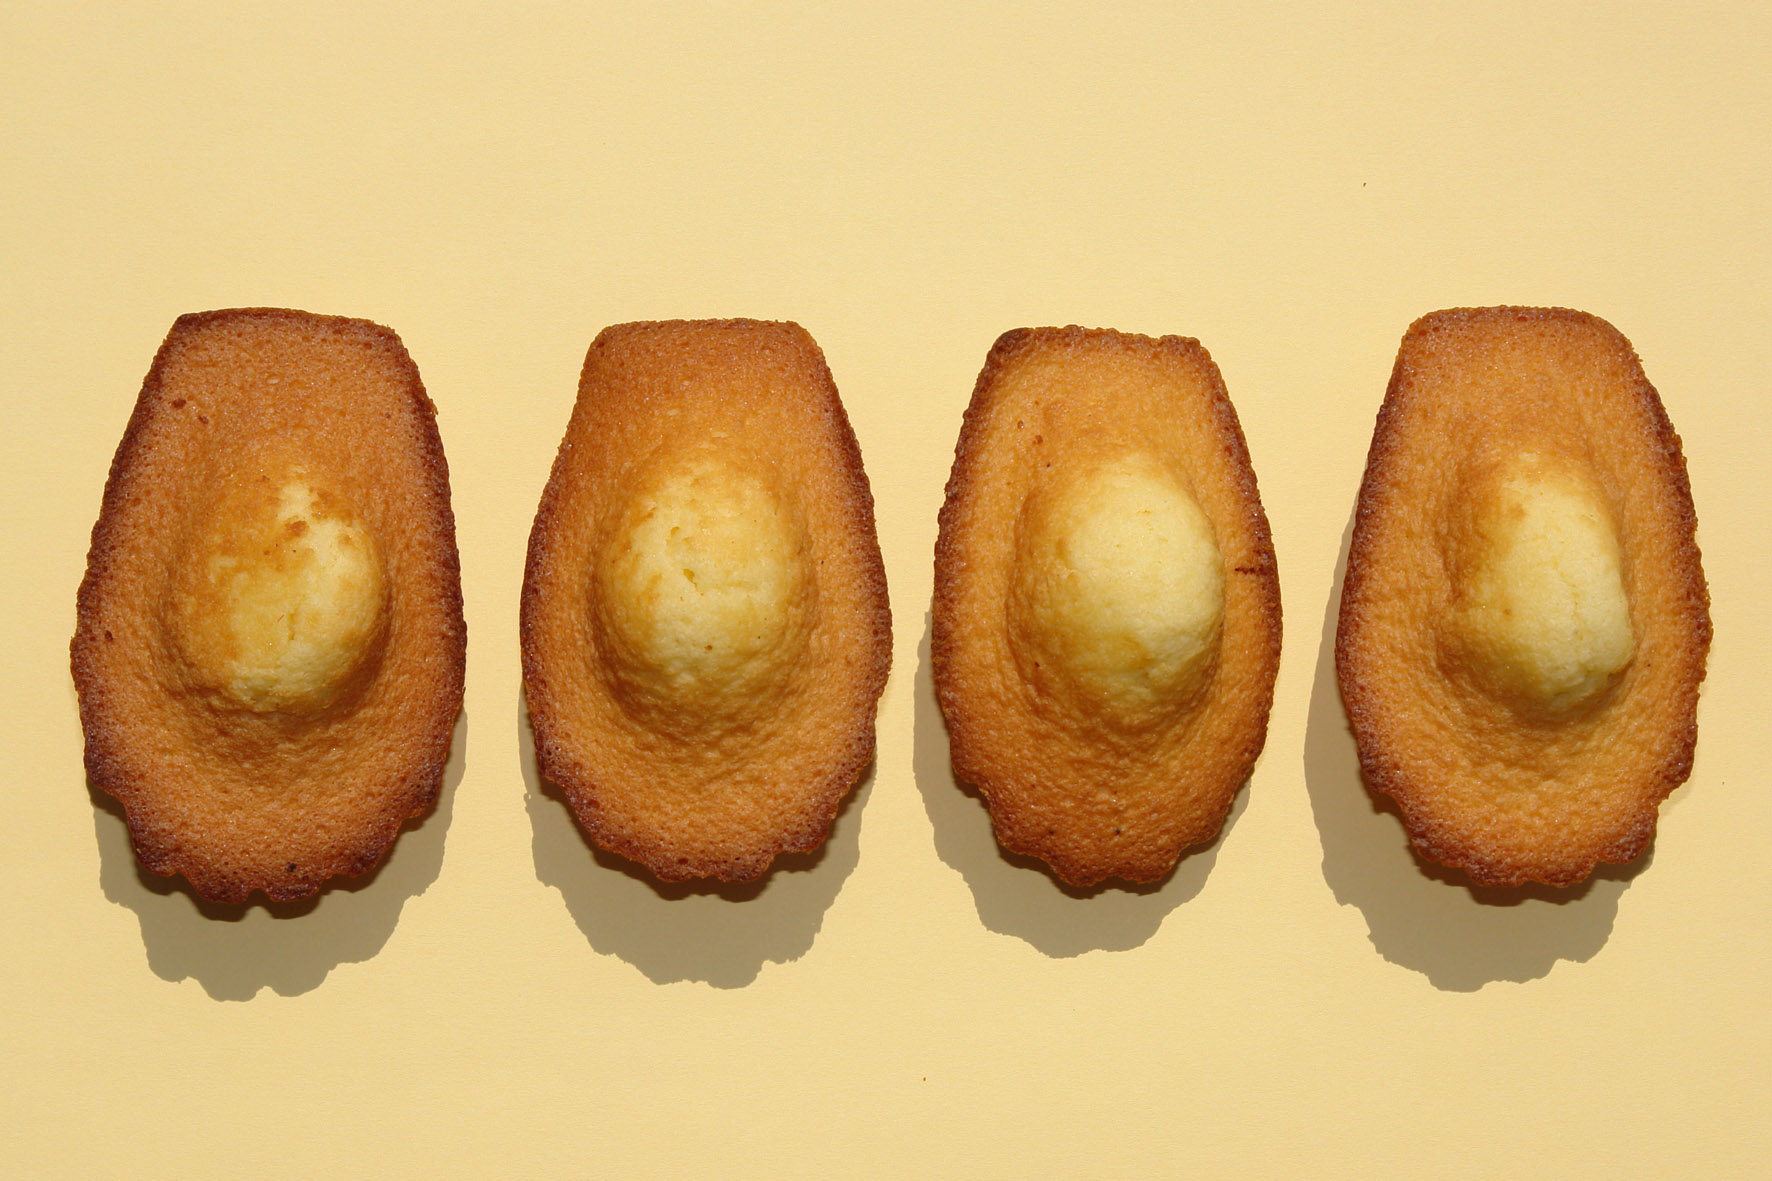 http://asset.keldelice.com/attachments/photos/598222/original/madeleines.jpg?1300446824